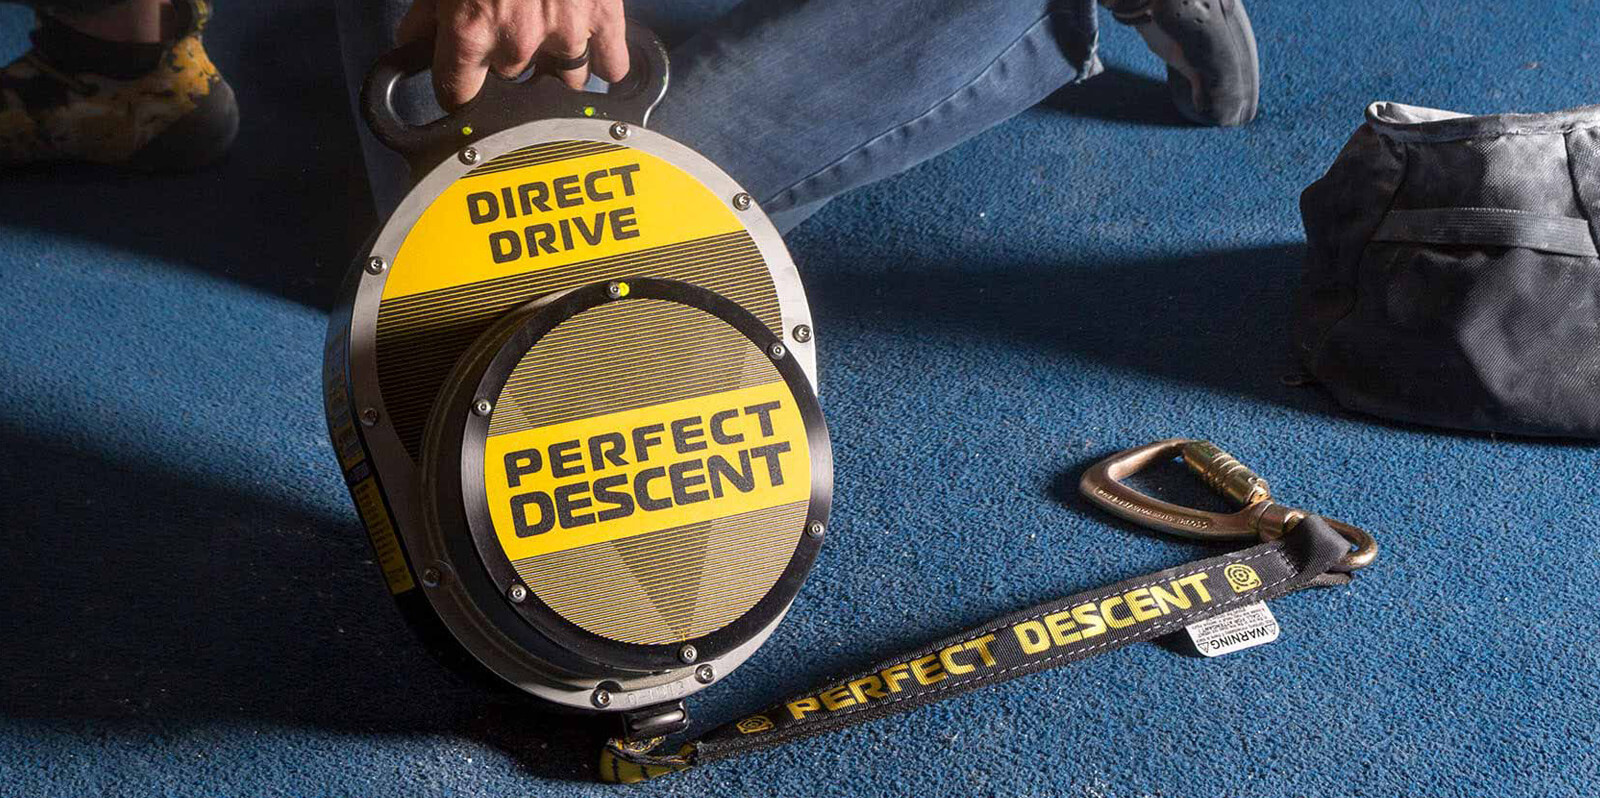 Perfect Descent auto belay is the ideal climbing companion